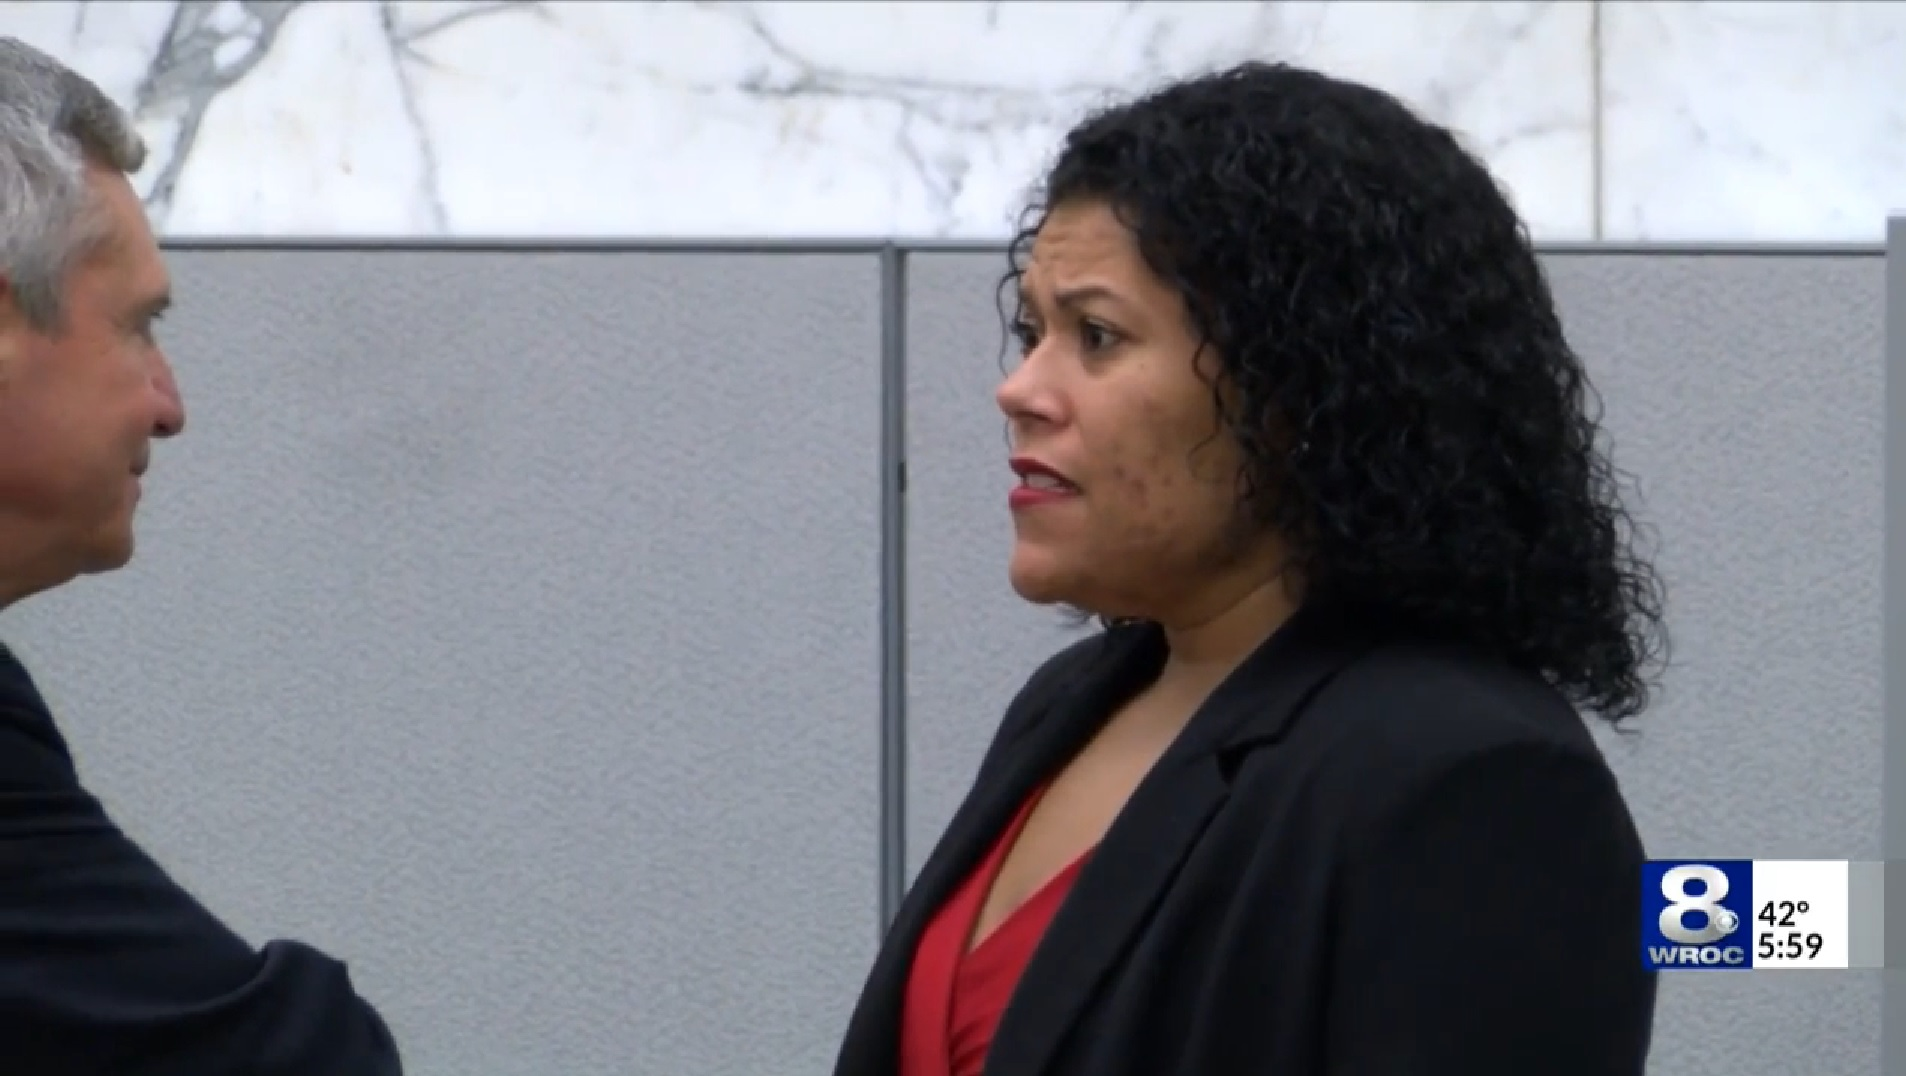 judge astacio_1524579123029.jpg-118809282.jpg